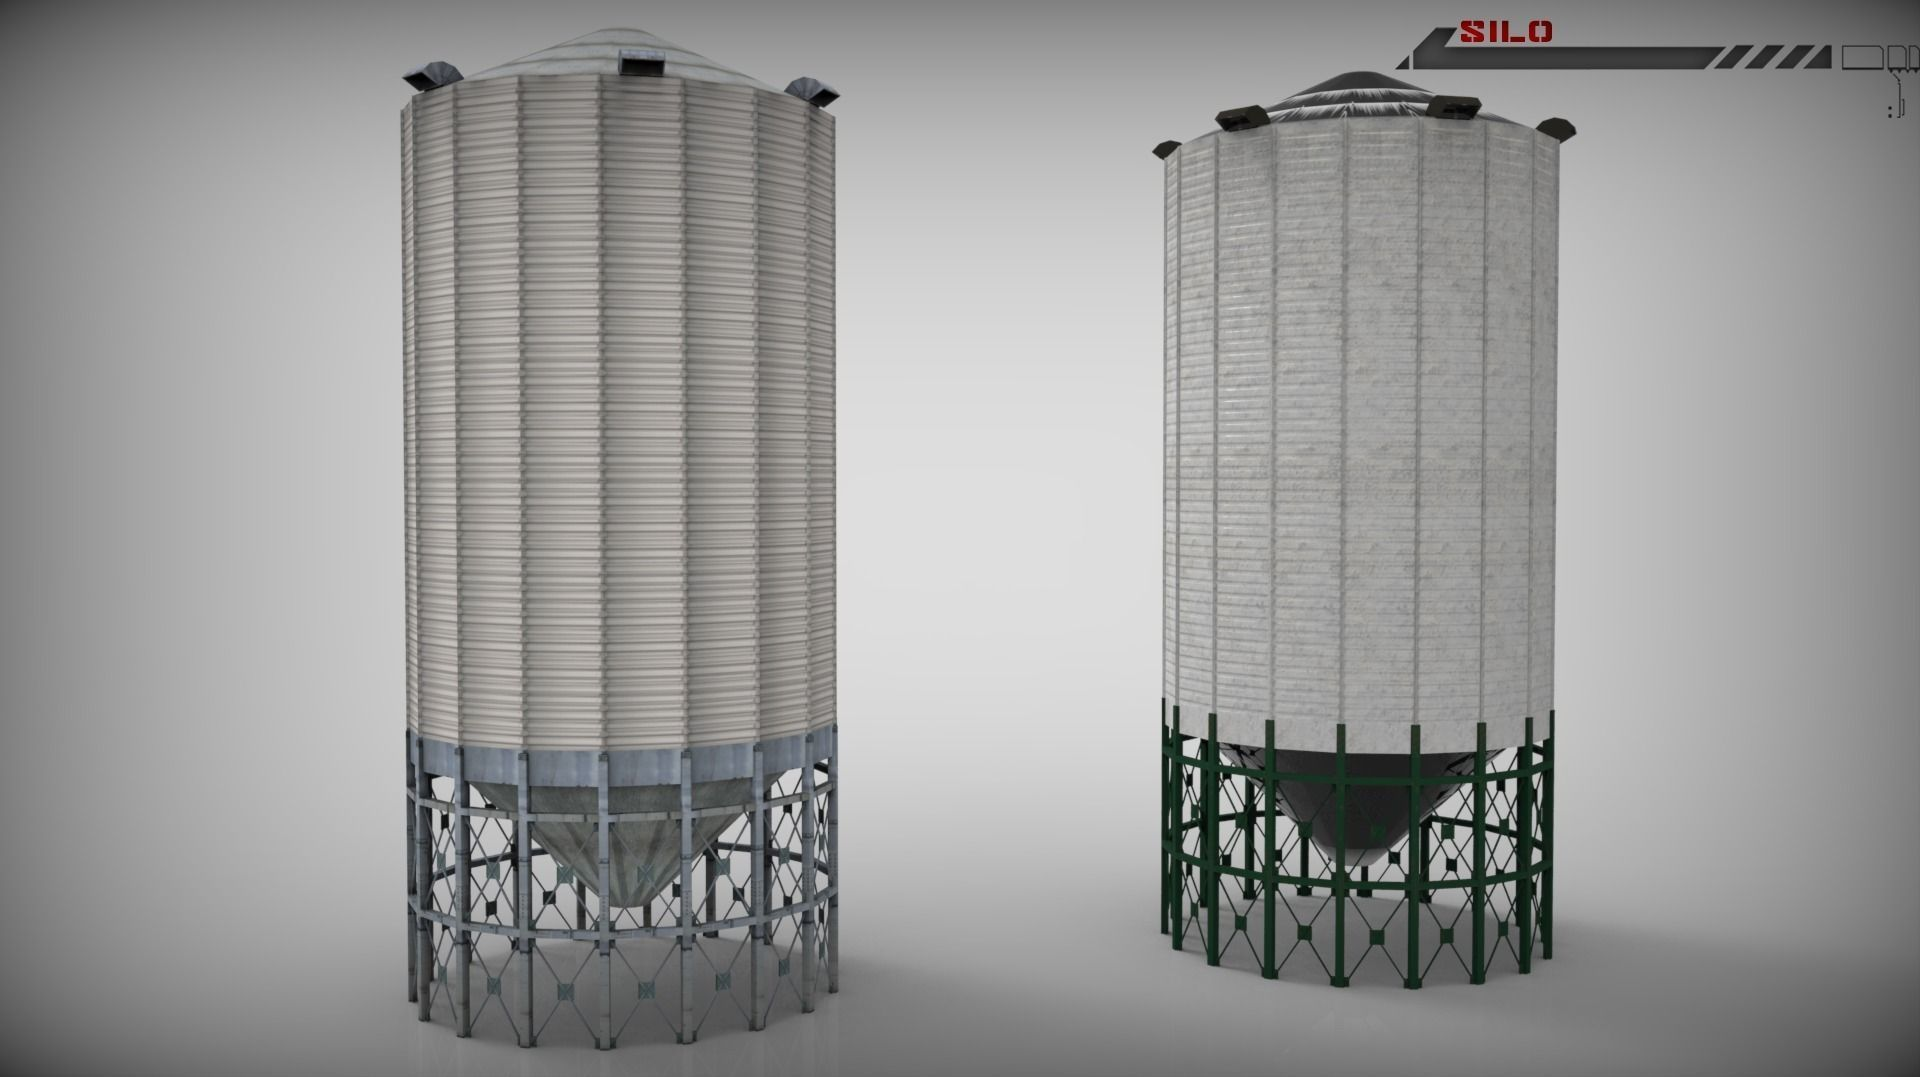 Silo Lowpoly